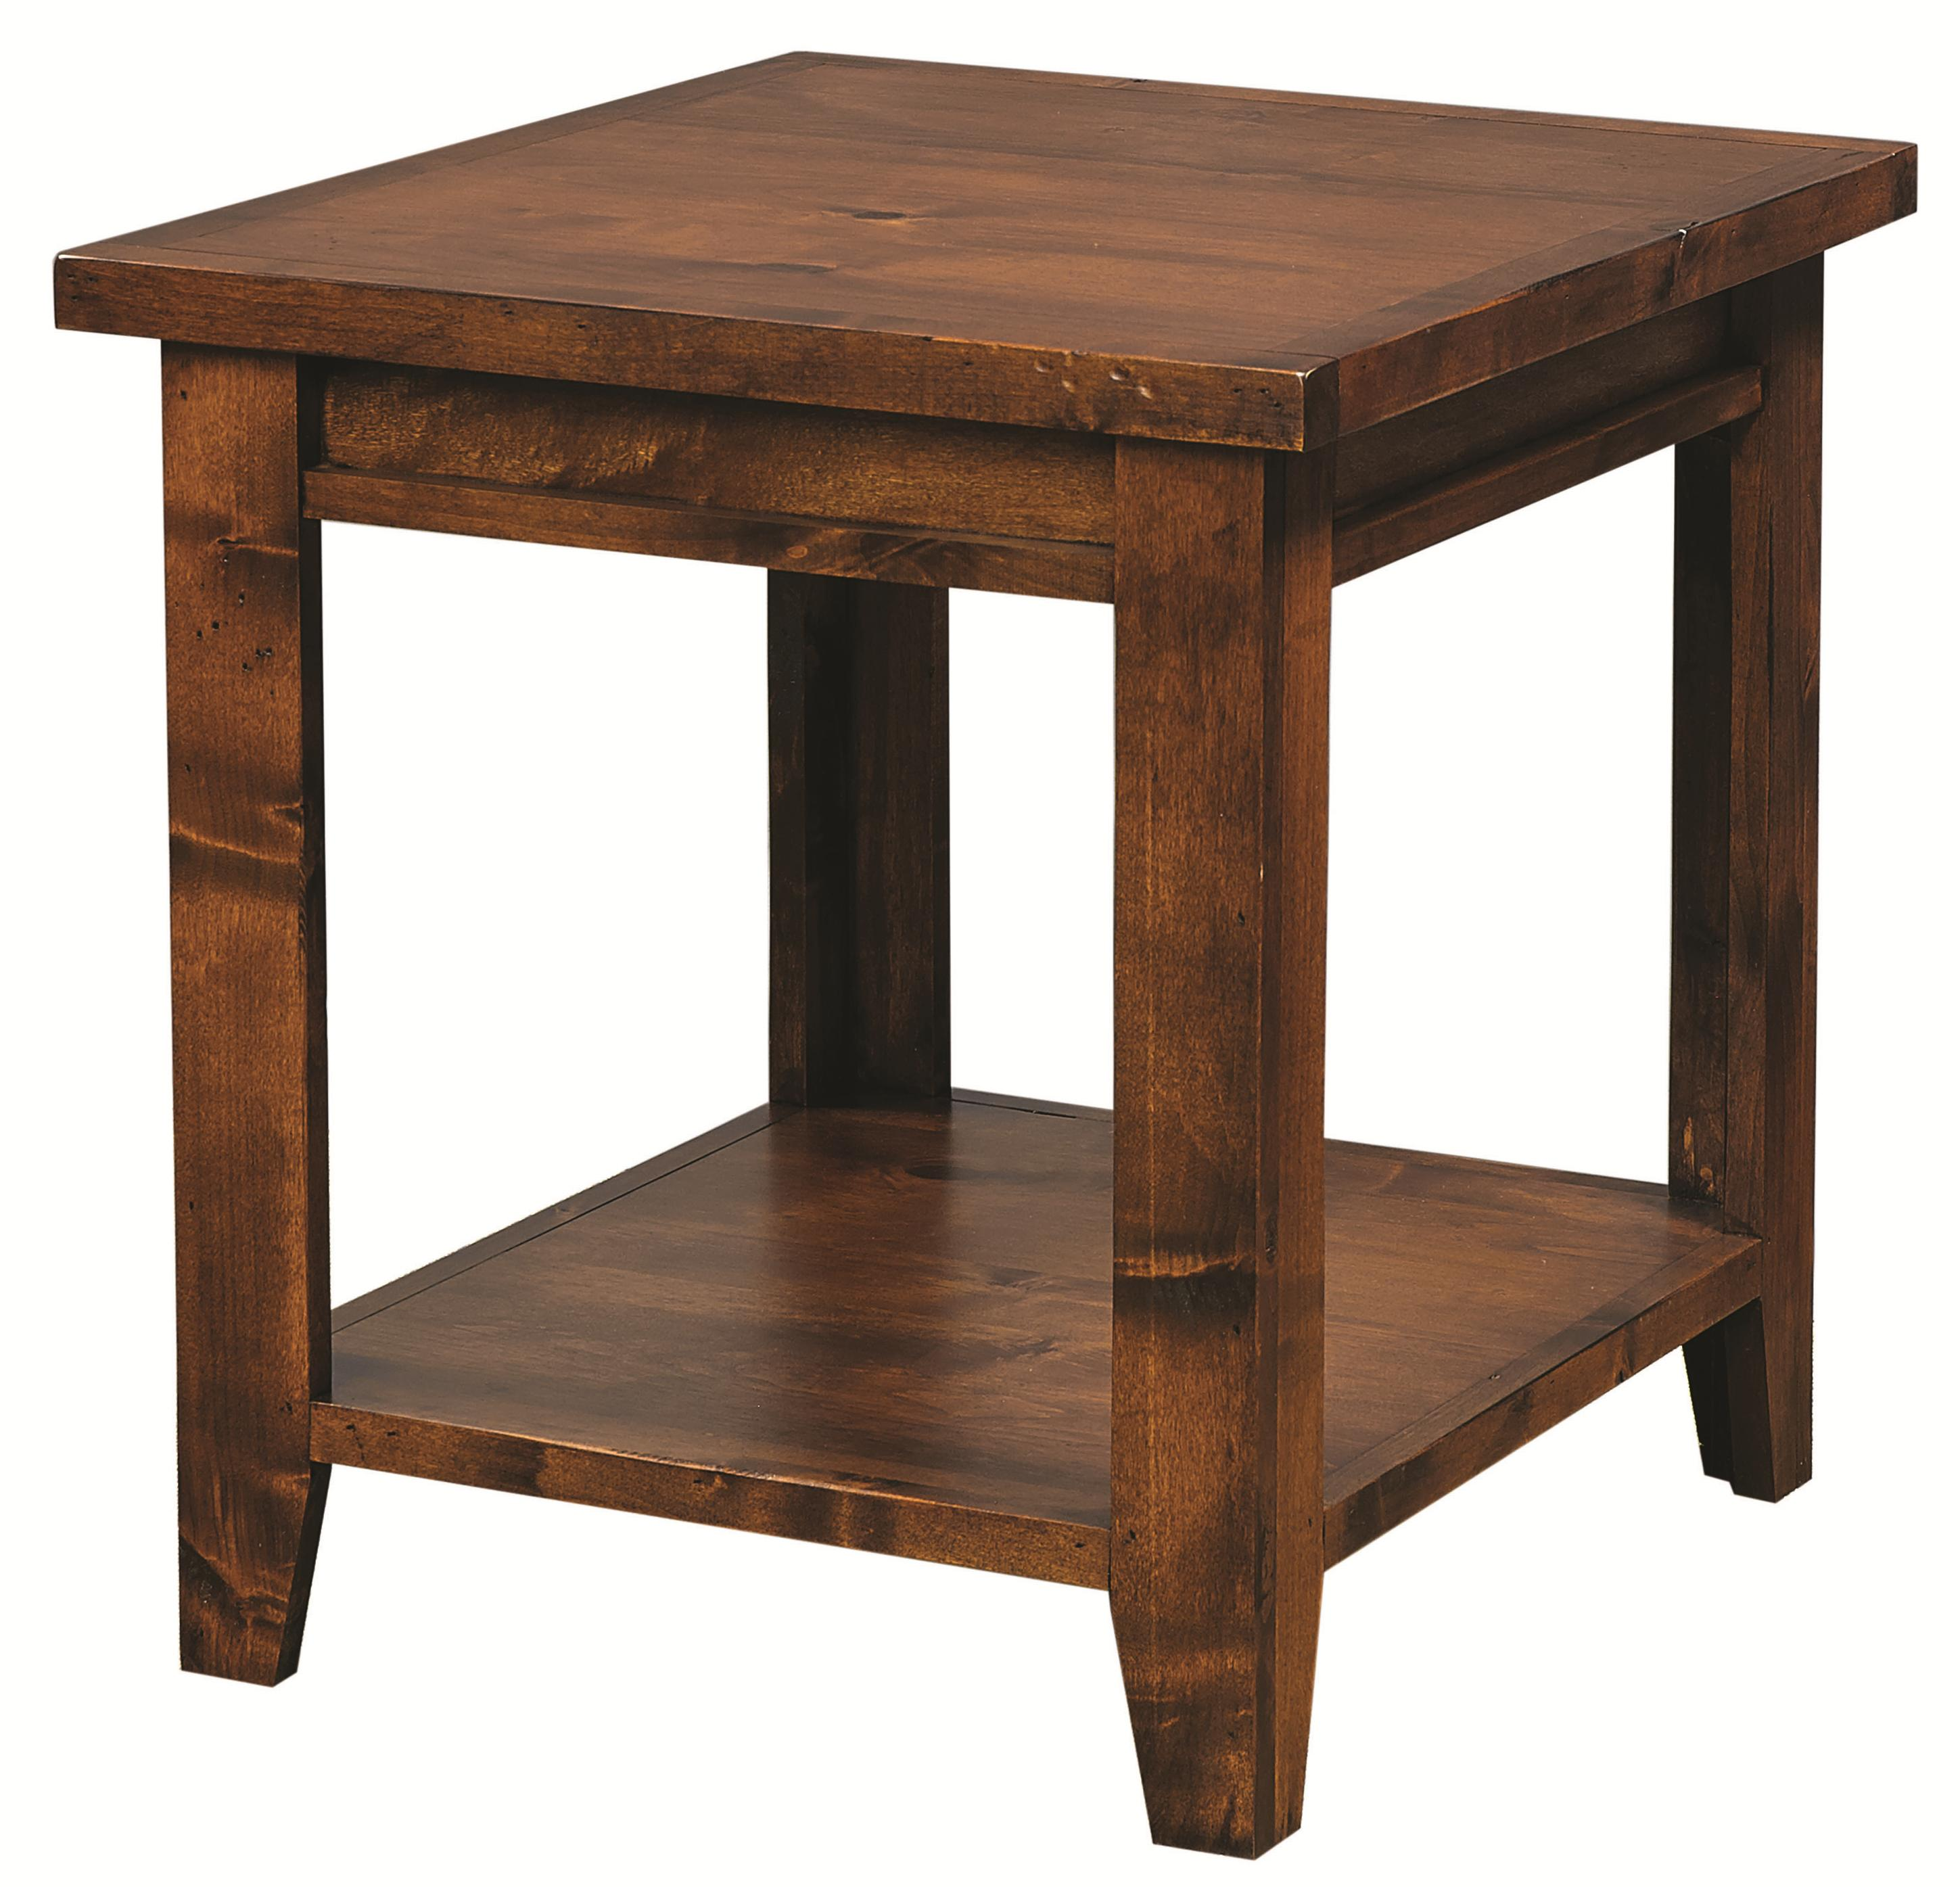 Aspenhome Alder Grove End Table - Item Number: DG914-FRT